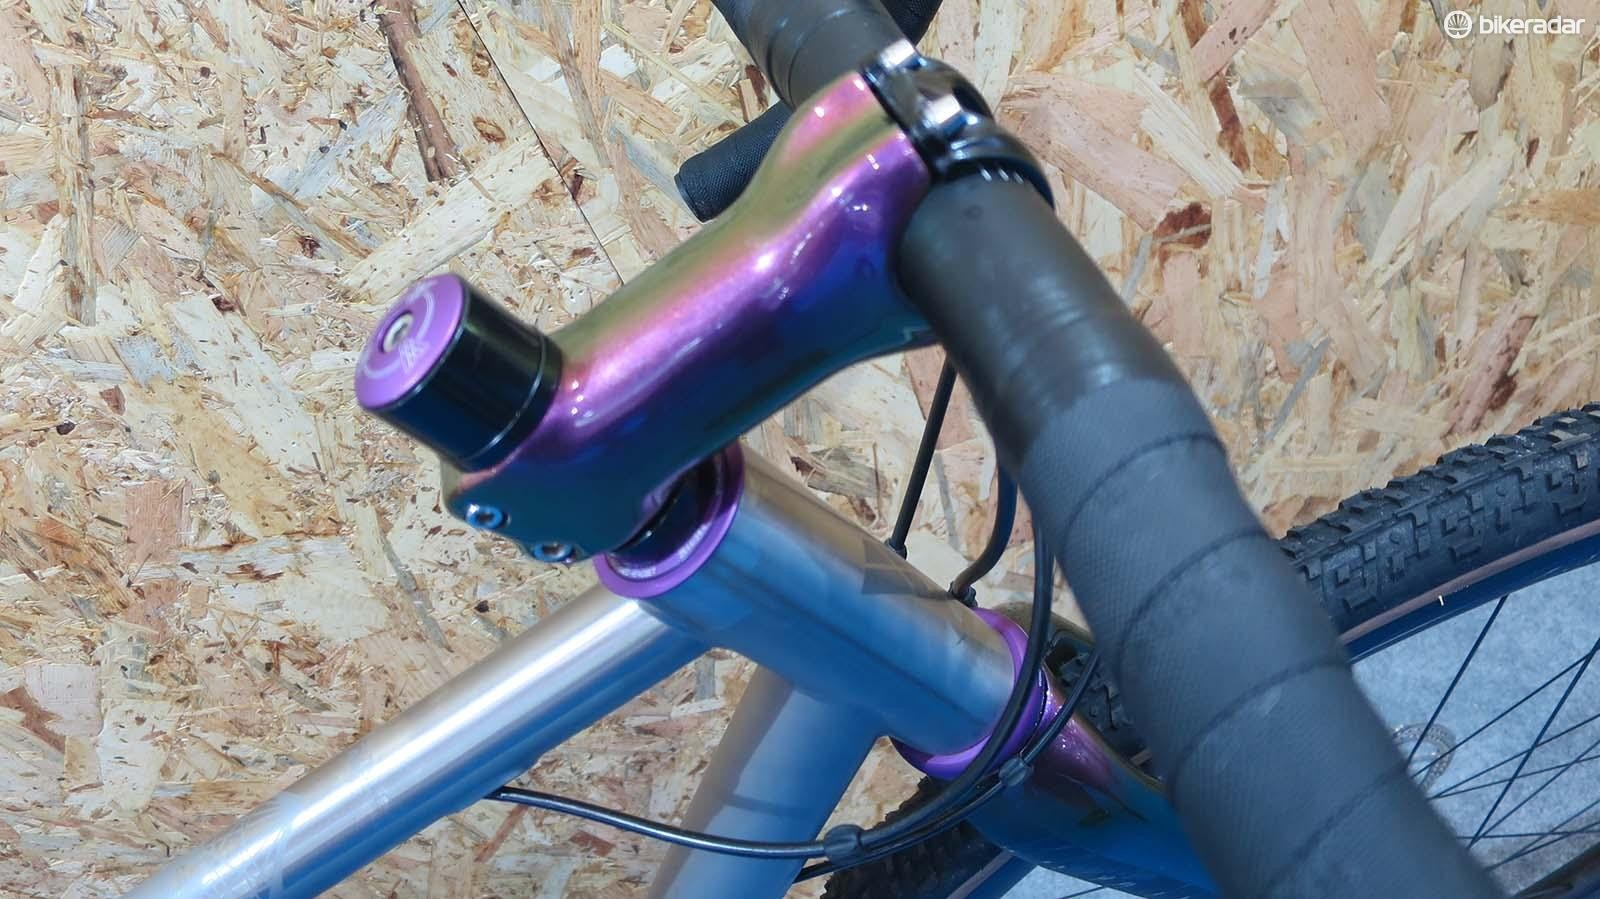 The colour-coded stem and fork is a nice touch on the Double Ace Ti